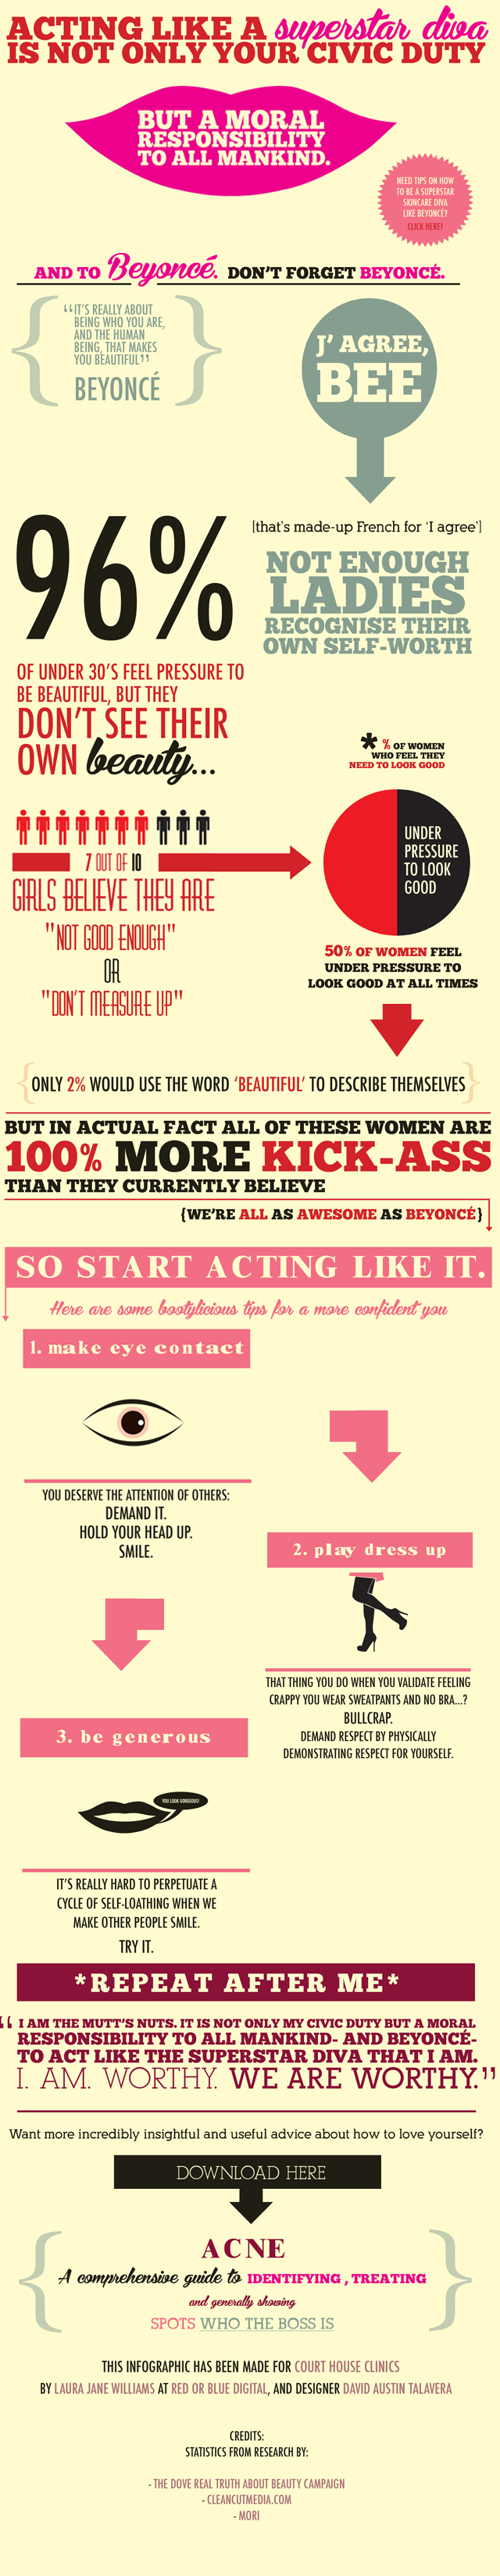 Acting like a superstar diva - Infographic